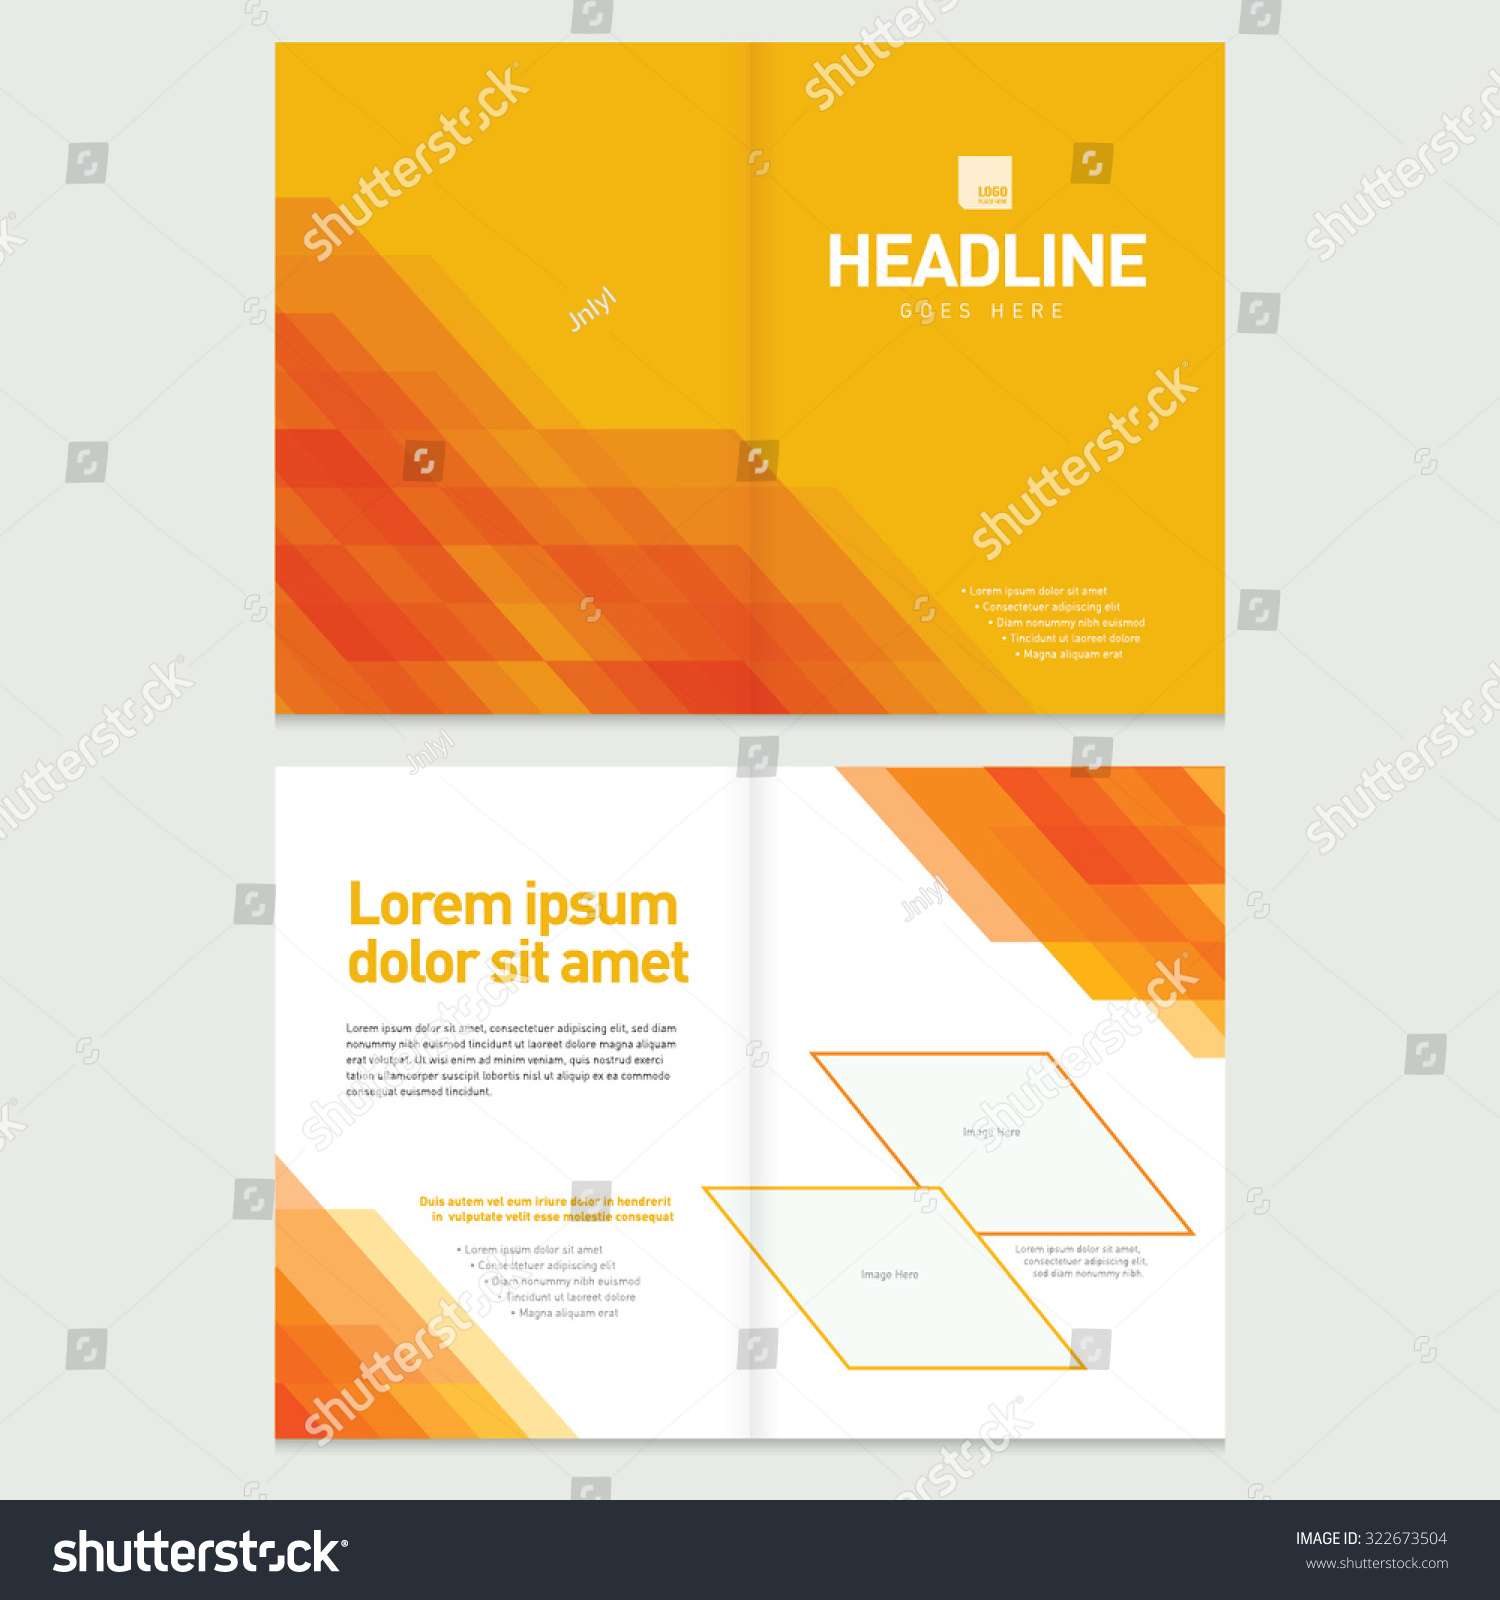 brochure cover inner pages design template stock vector  brochure cover and inner pages design template abstract background geometrical pattern presentation slides